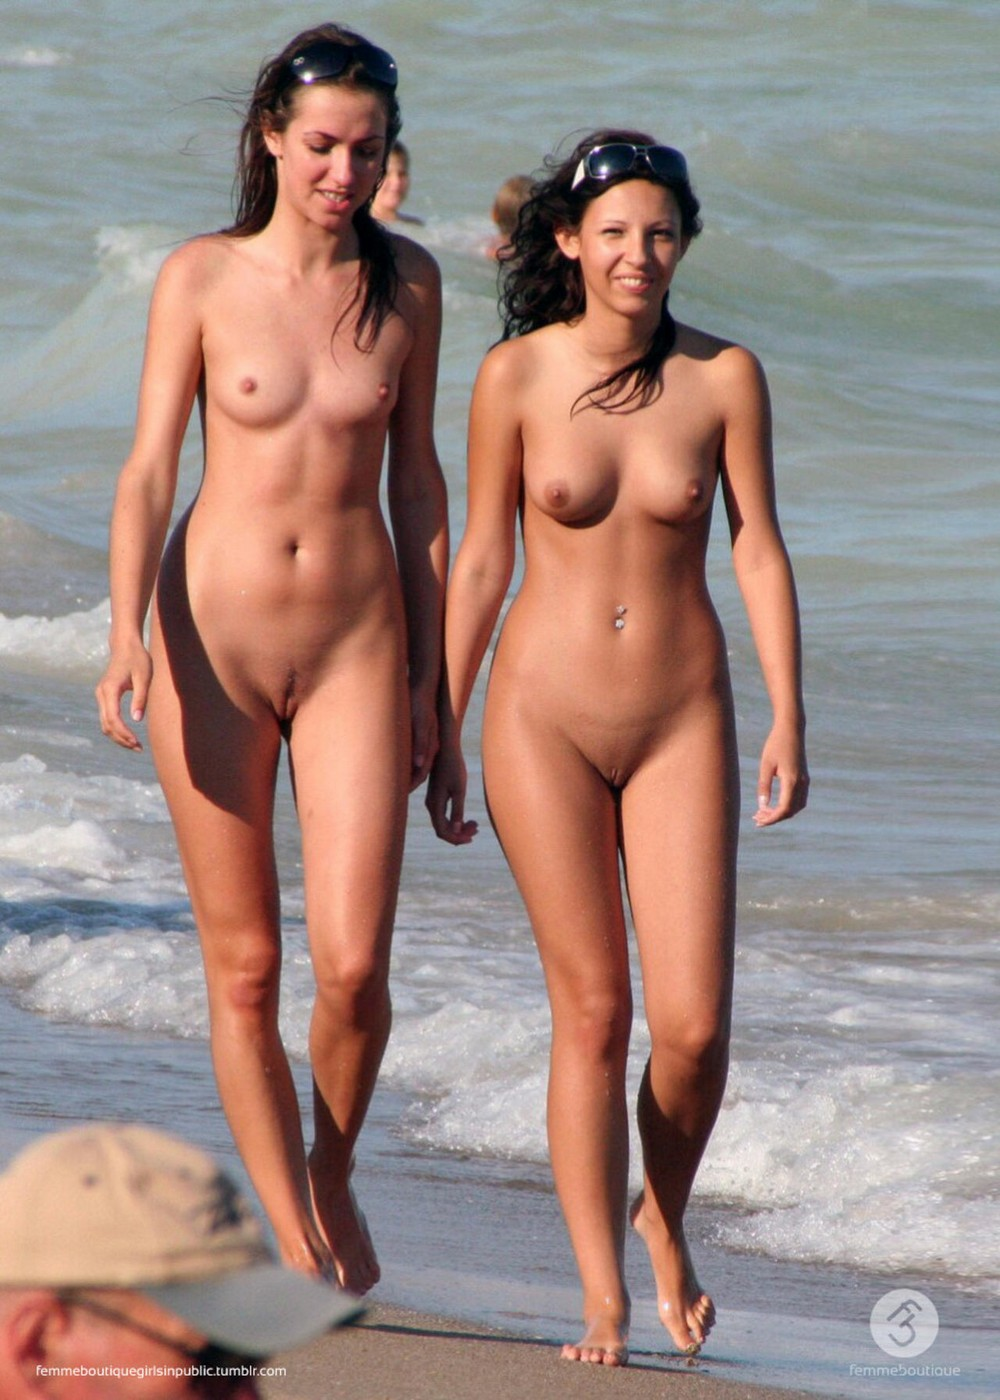 Young nudists beach pics